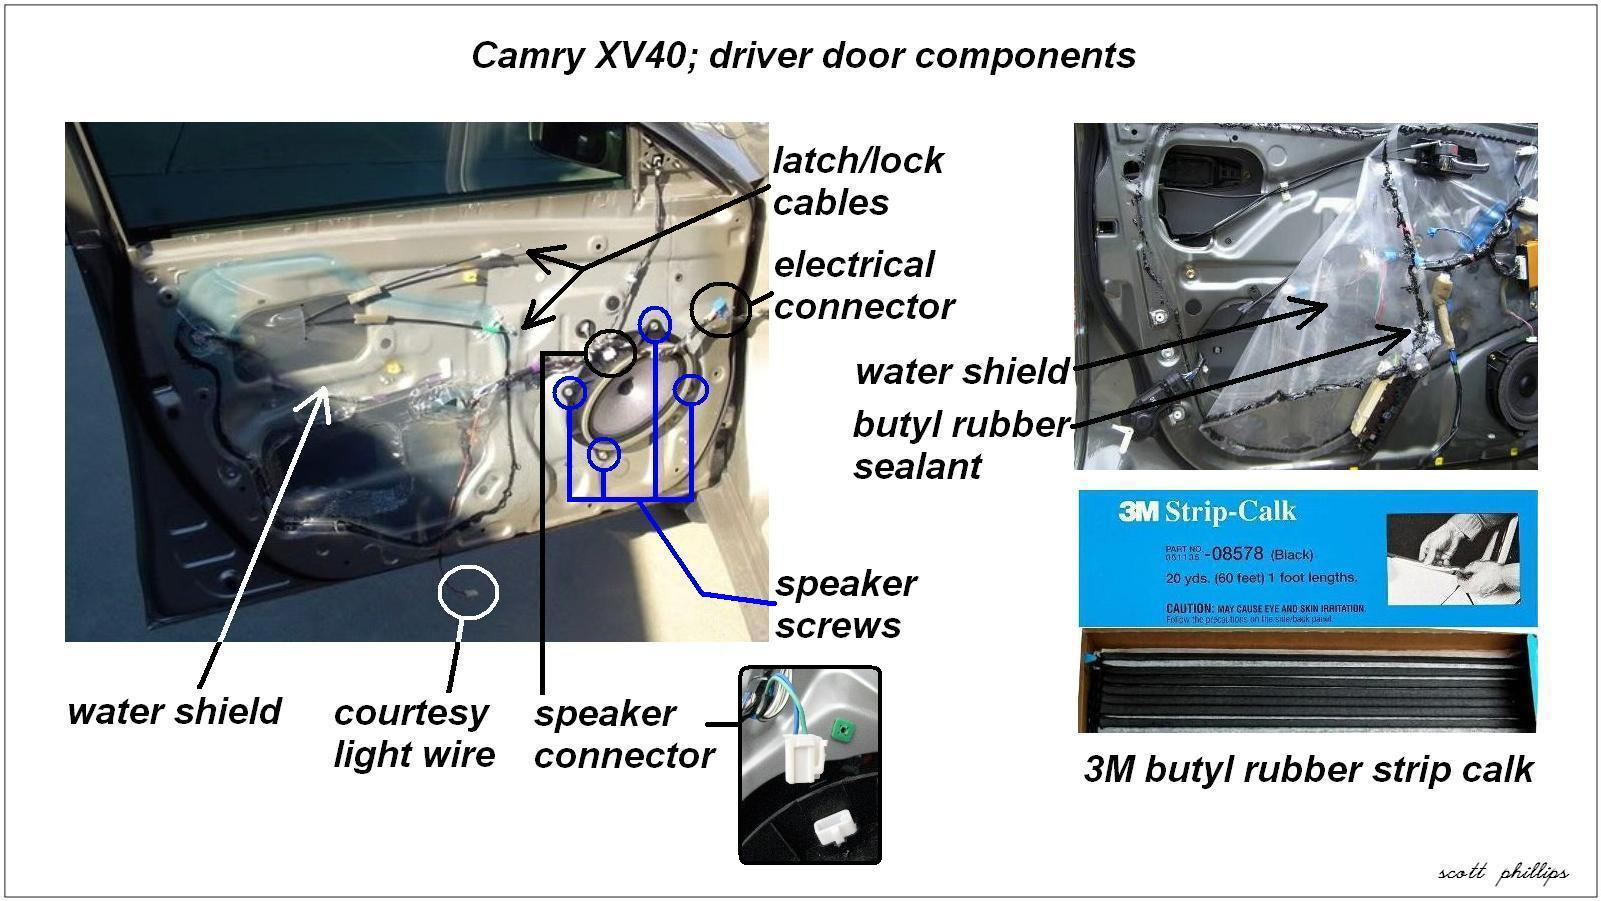 2 CamryXV40DriverDoorComponents 87603 toyota camry 2007 2011 how to replace power window actuator 2015 Camry SE Interior at love-stories.co